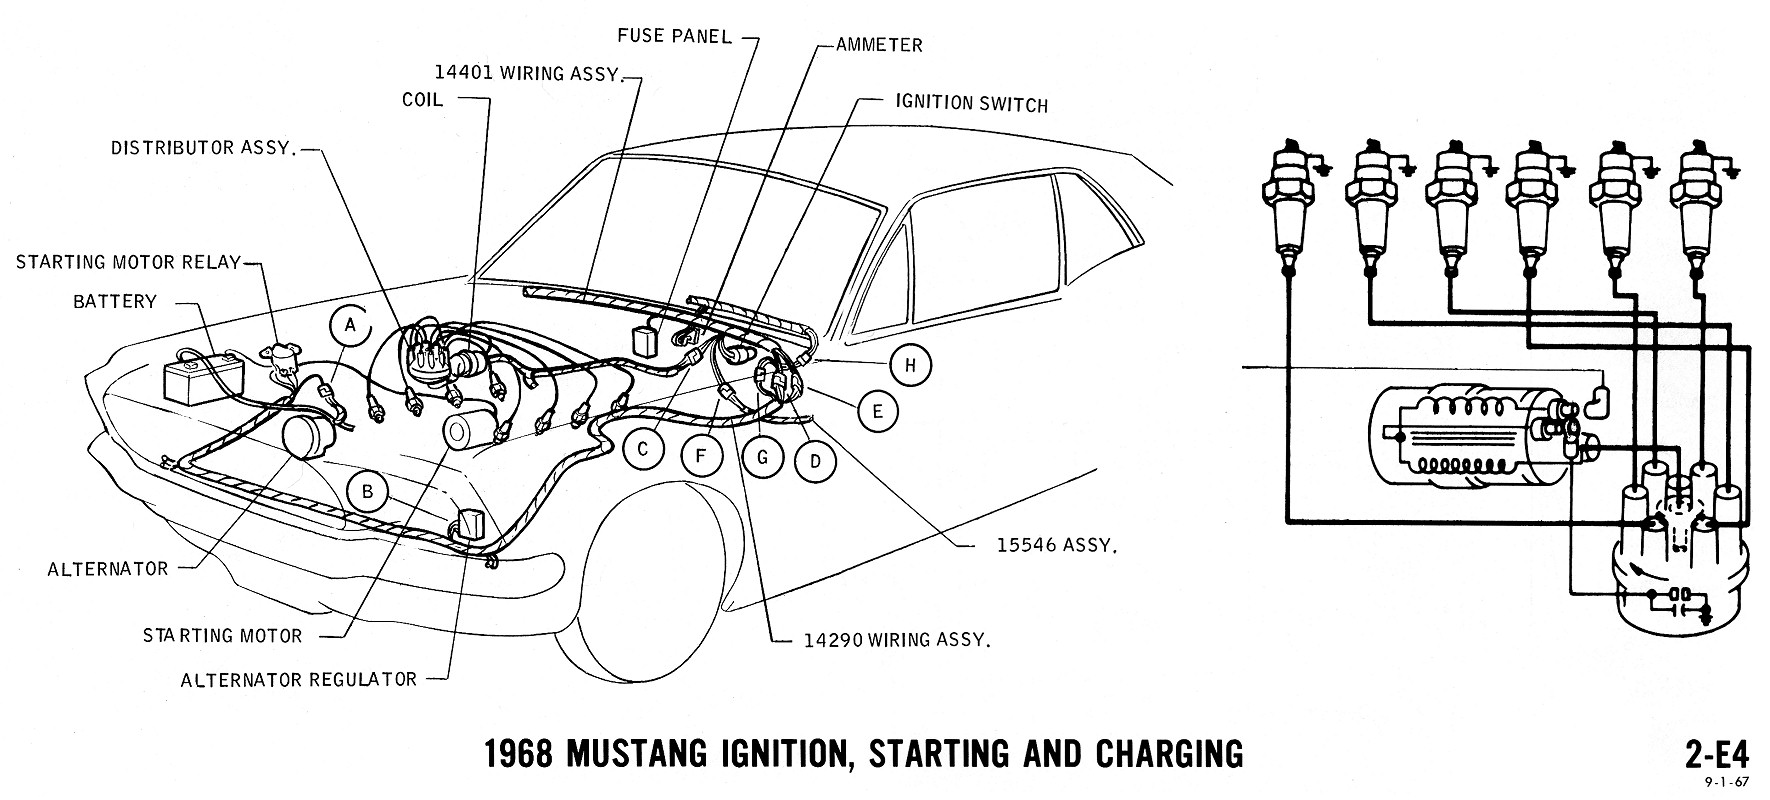 1968 mustang wiring diagram ignition starting charging 2 1968 mustang wiring diagrams and vacuum schematics average joe 1965 ford mustang wiring diagrams at sewacar.co